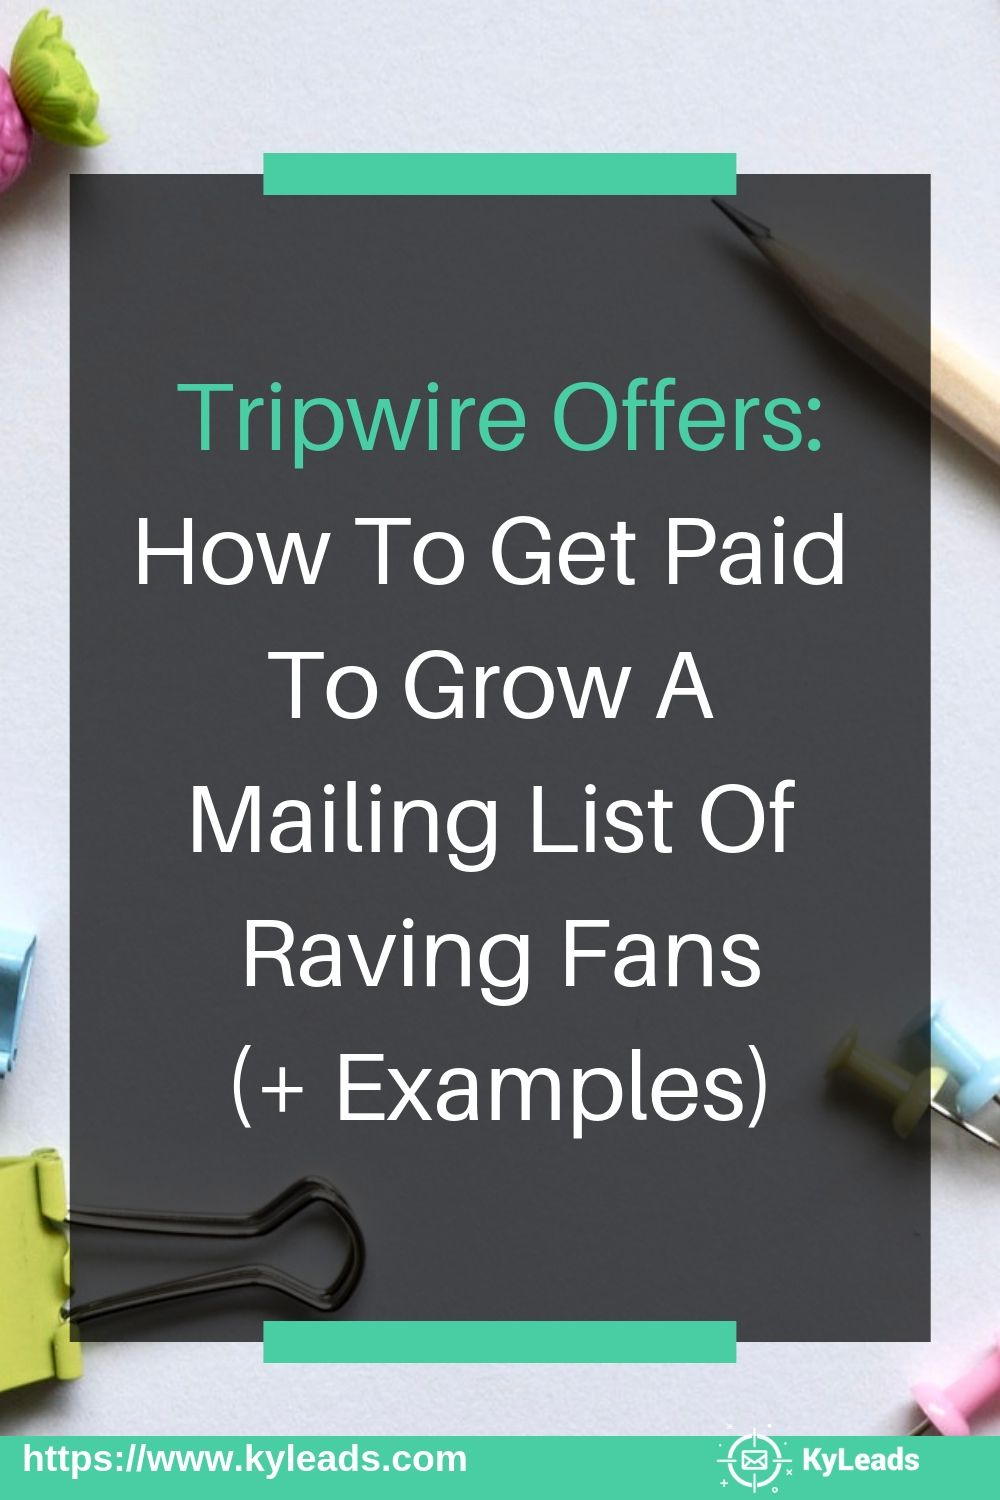 It Costs Money To Make You Spend On Ads Blogging And A Bunch Of Other Things With Tripwire Offers Can Offset All The Your